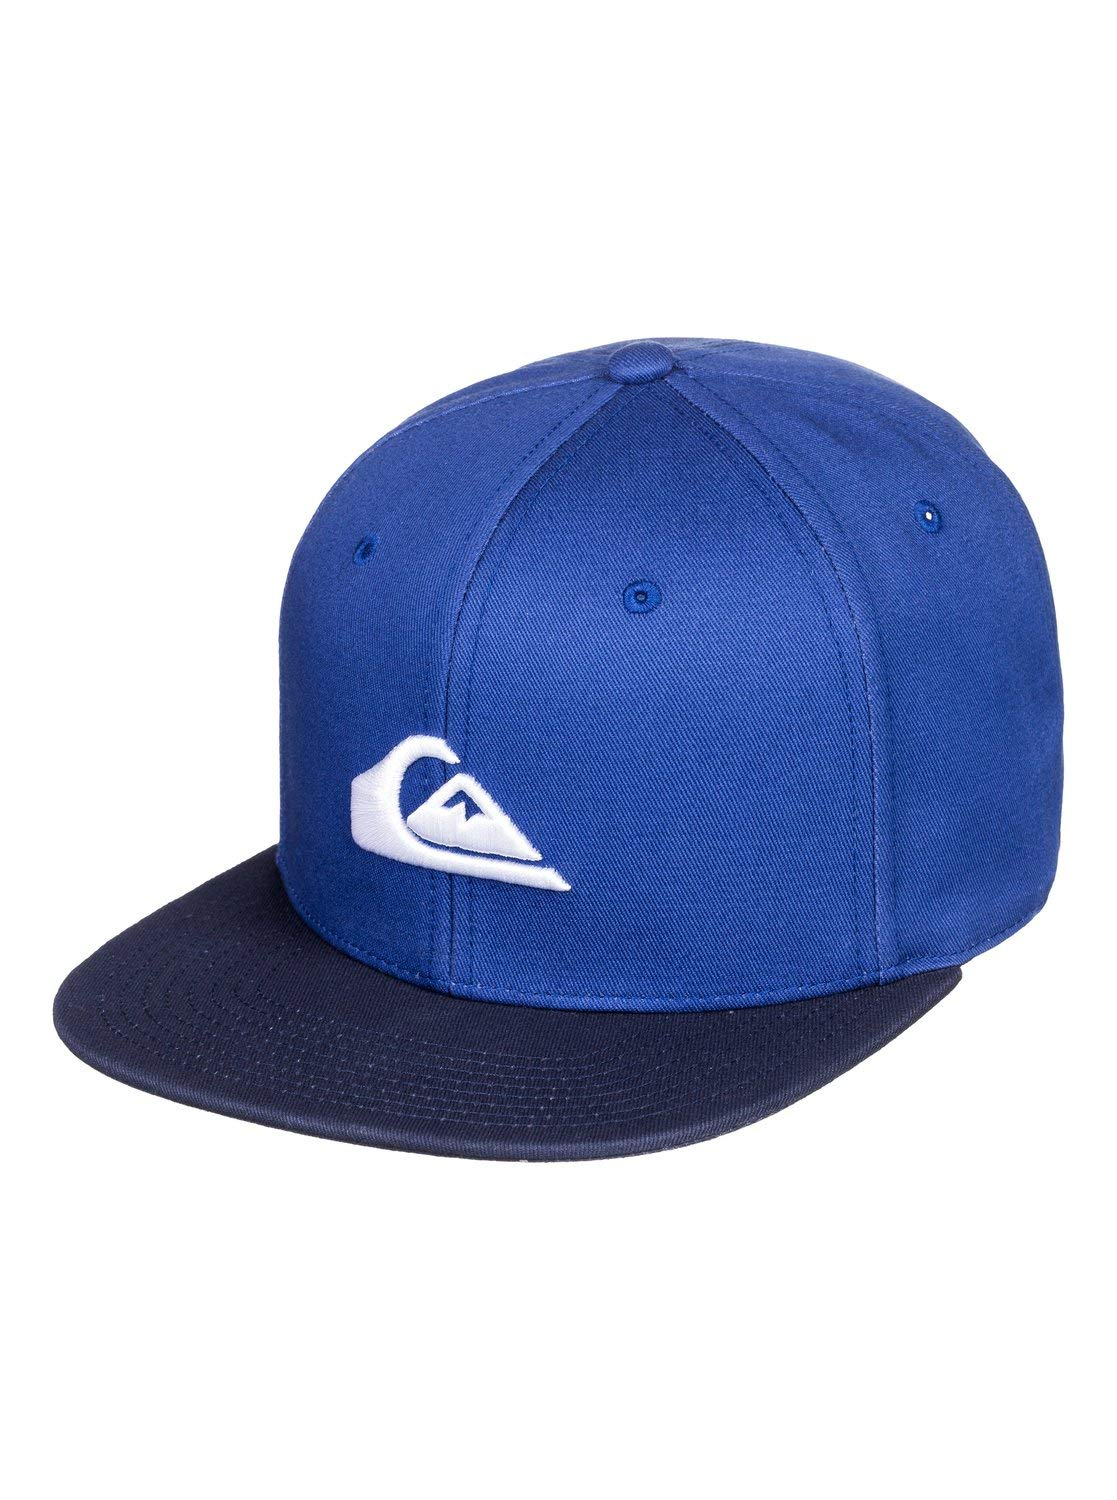 Quiksilver Men's Chompers Hat